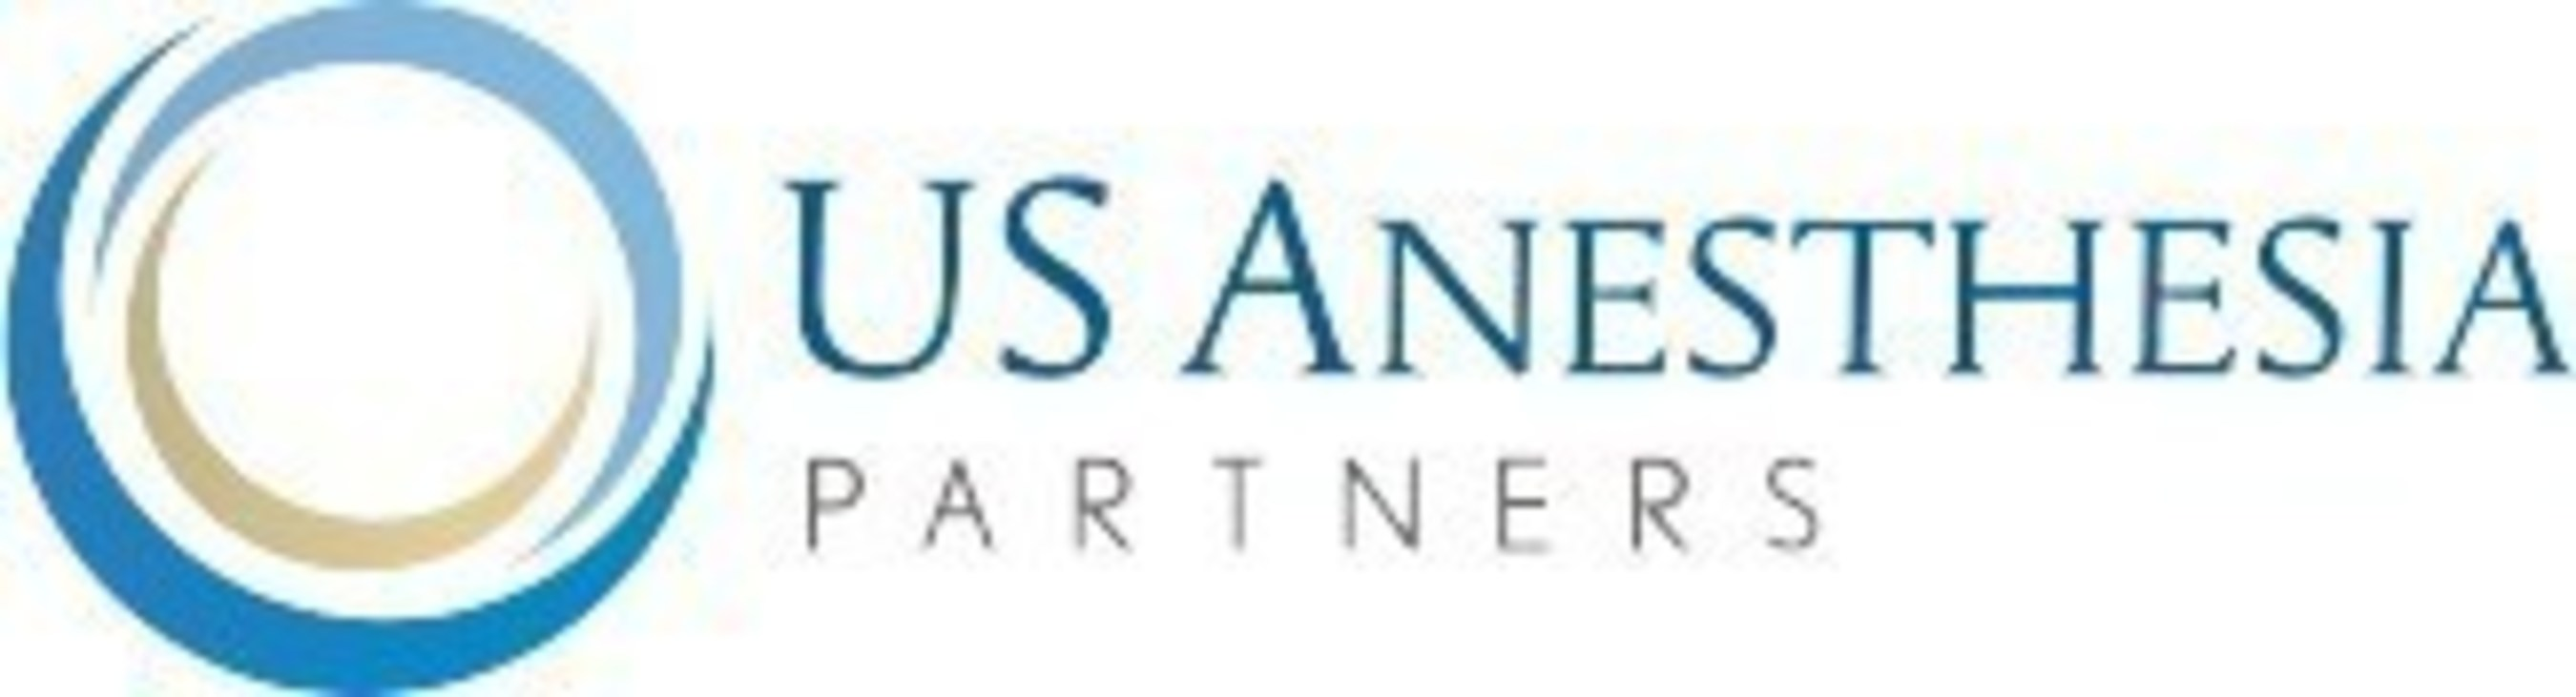 U.S. Anesthesia Partners Expands in Colorado Through Its New Partnership with South Denver